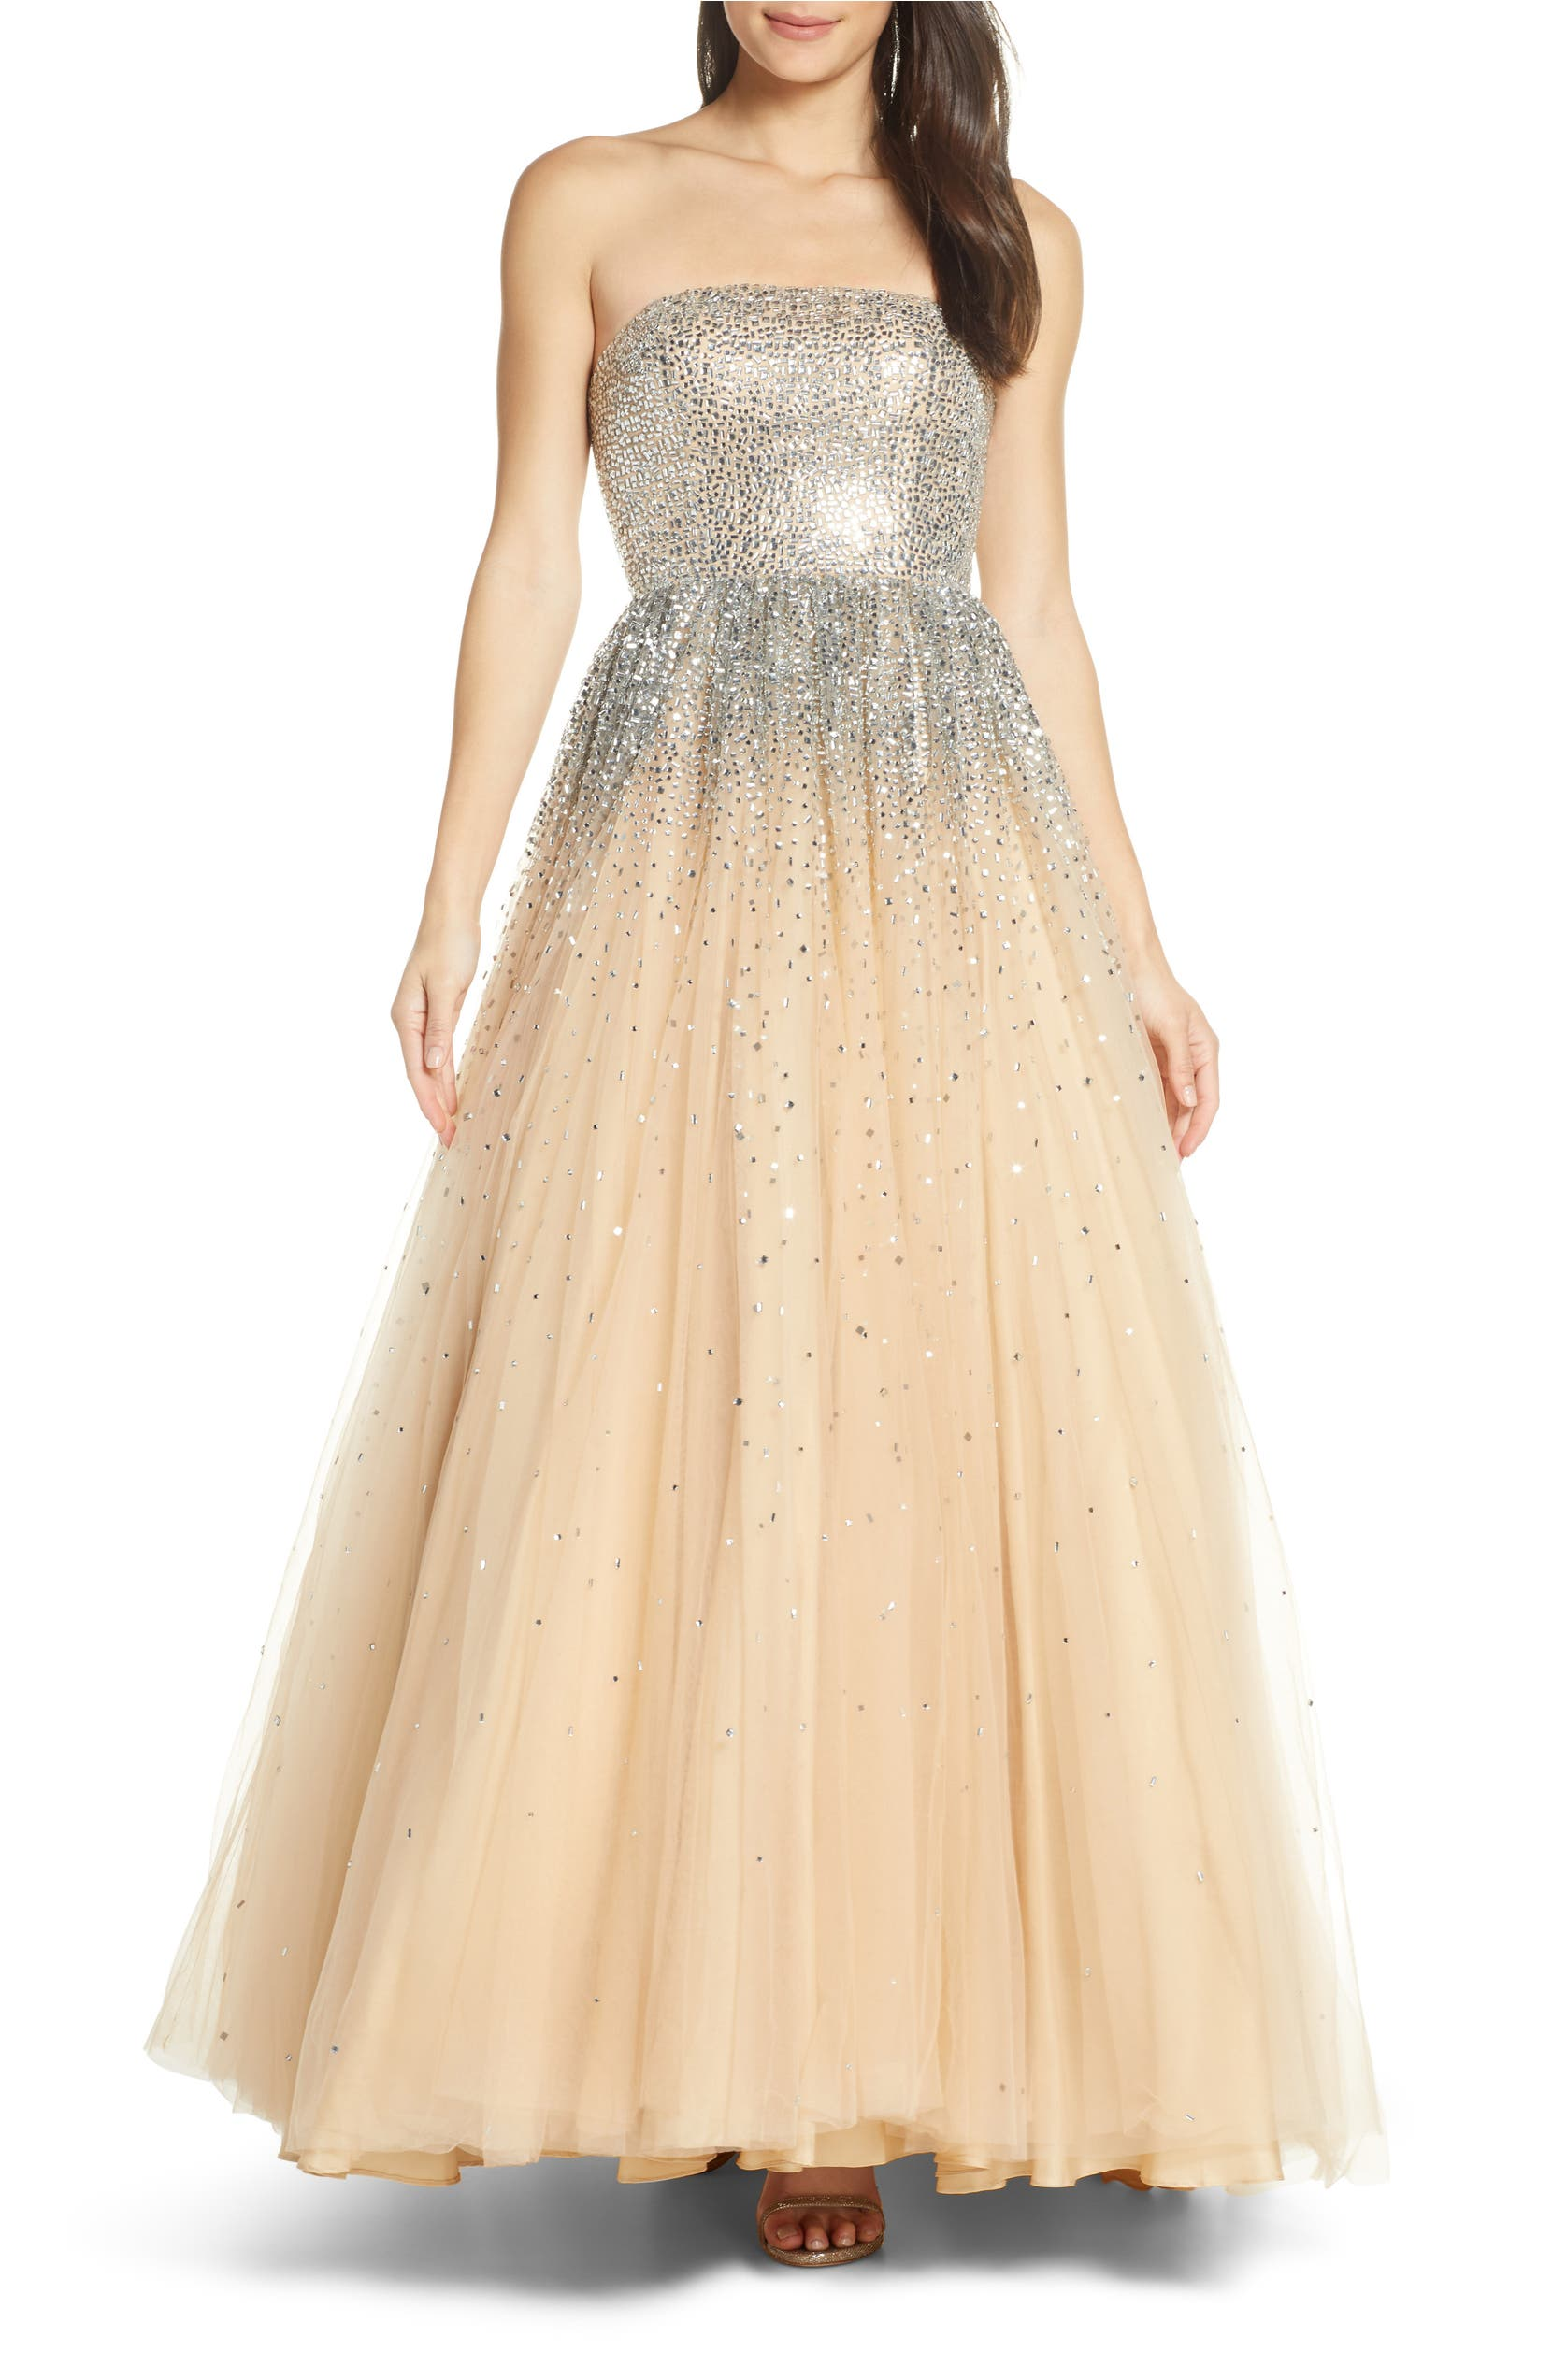 01d3b23f27062 Mac Duggal Bejeweled Strapless Tulle Evening Dress | Nordstrom